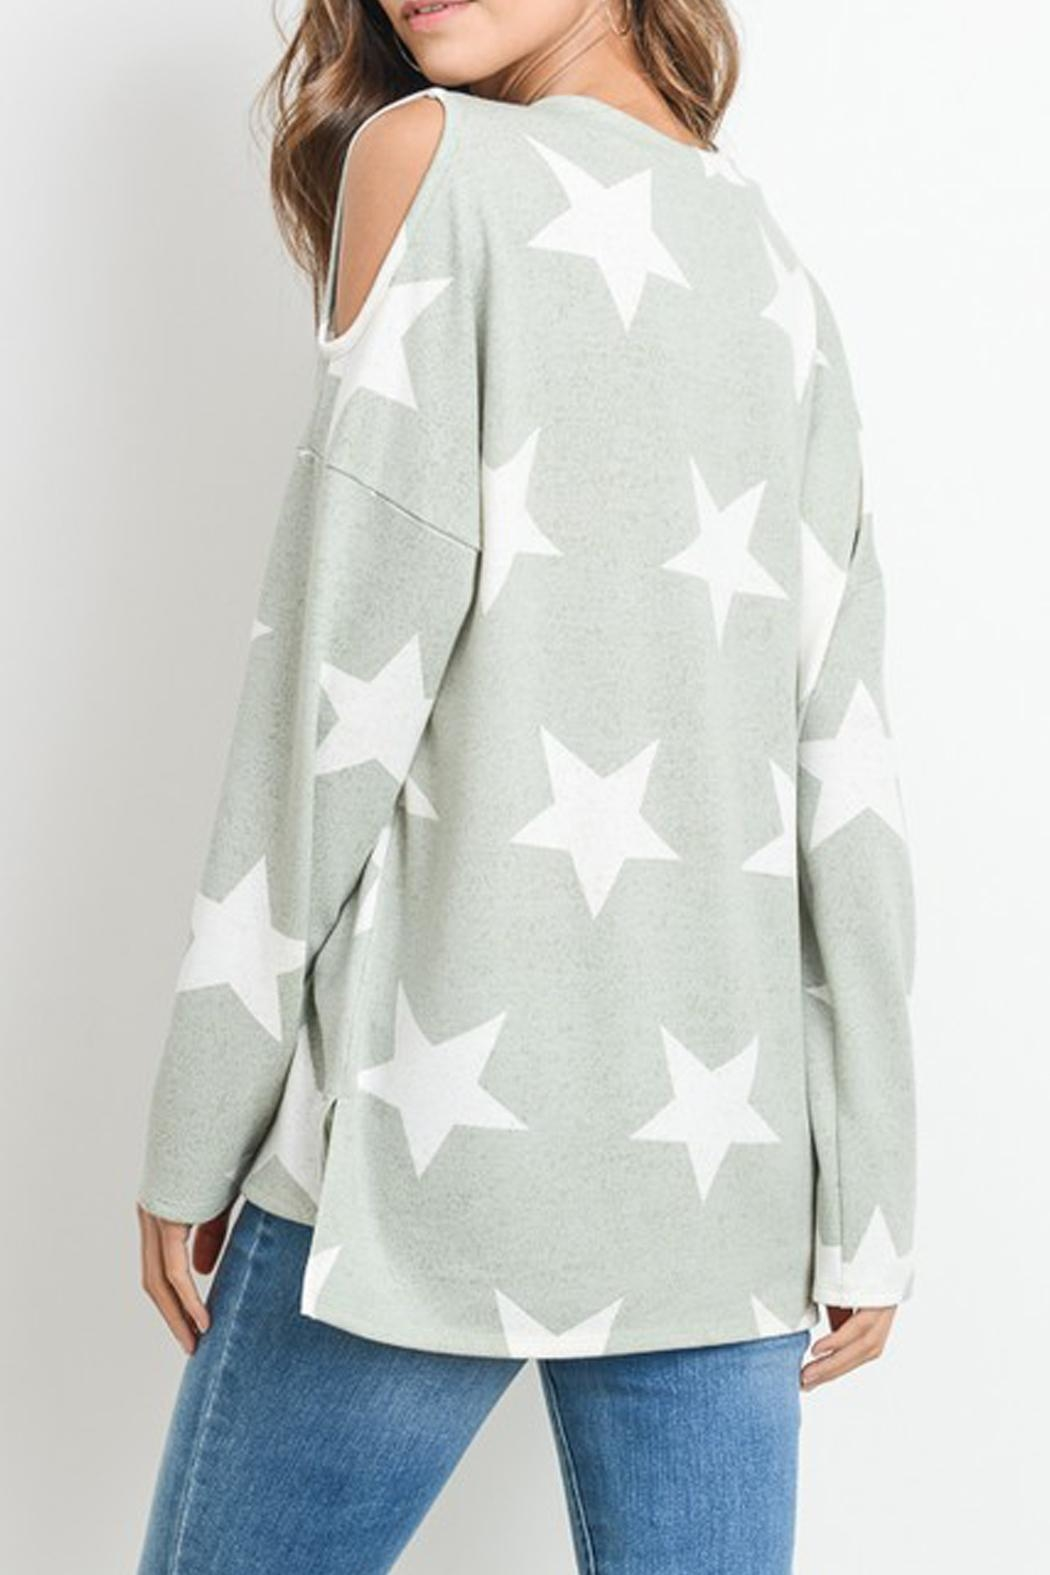 First Love Star Print Top - Side Cropped Image